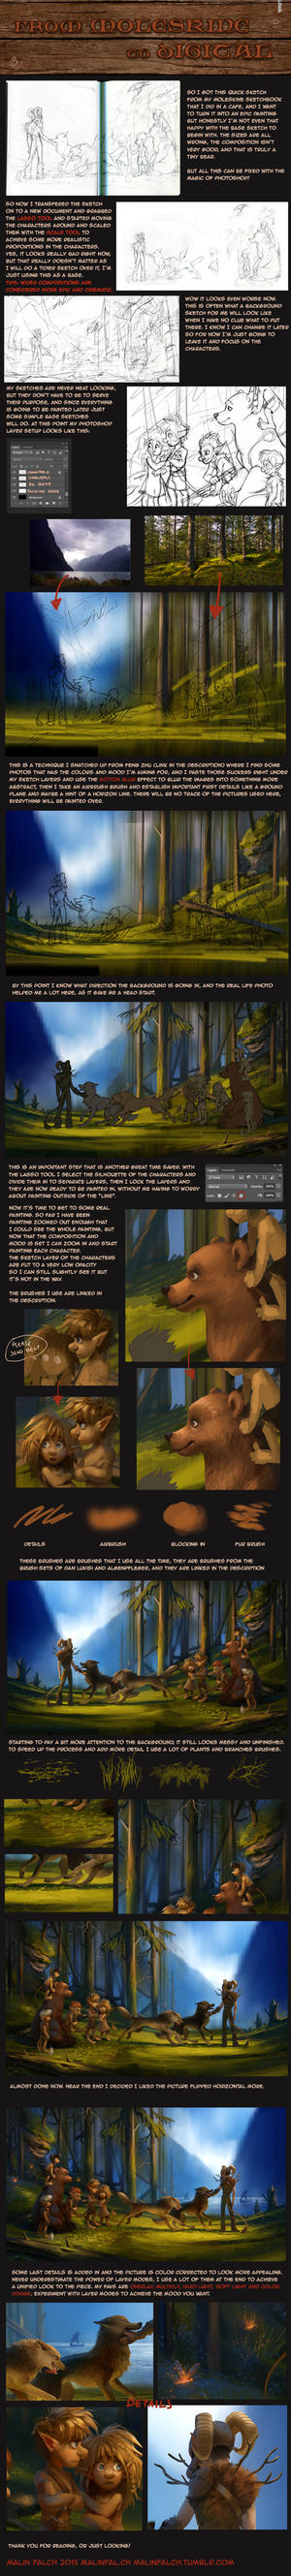 step by step digital painting tutorial by Detkef